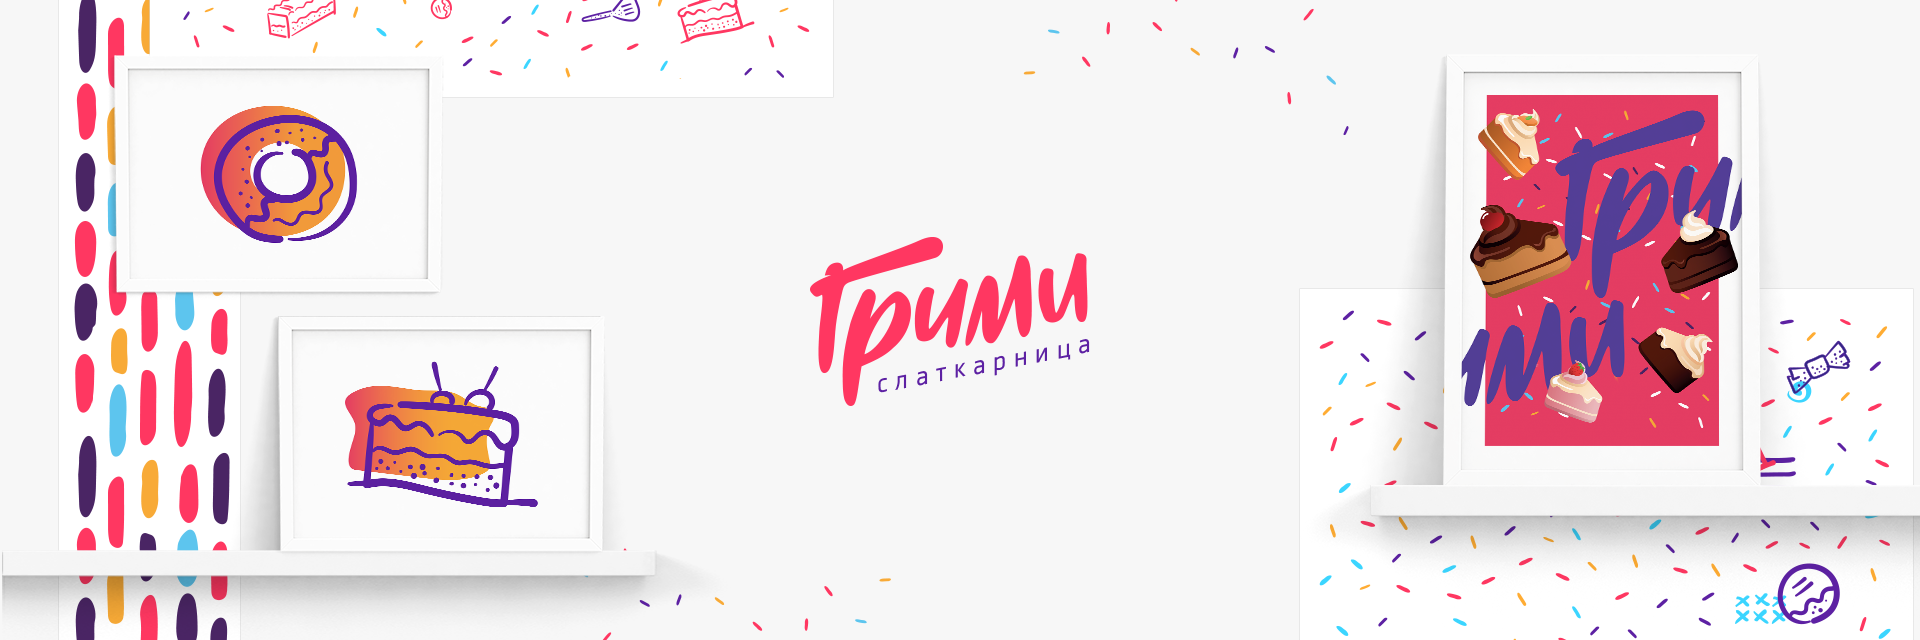 Branding, packaging and Digital design, web, ui/ux for a local bakery